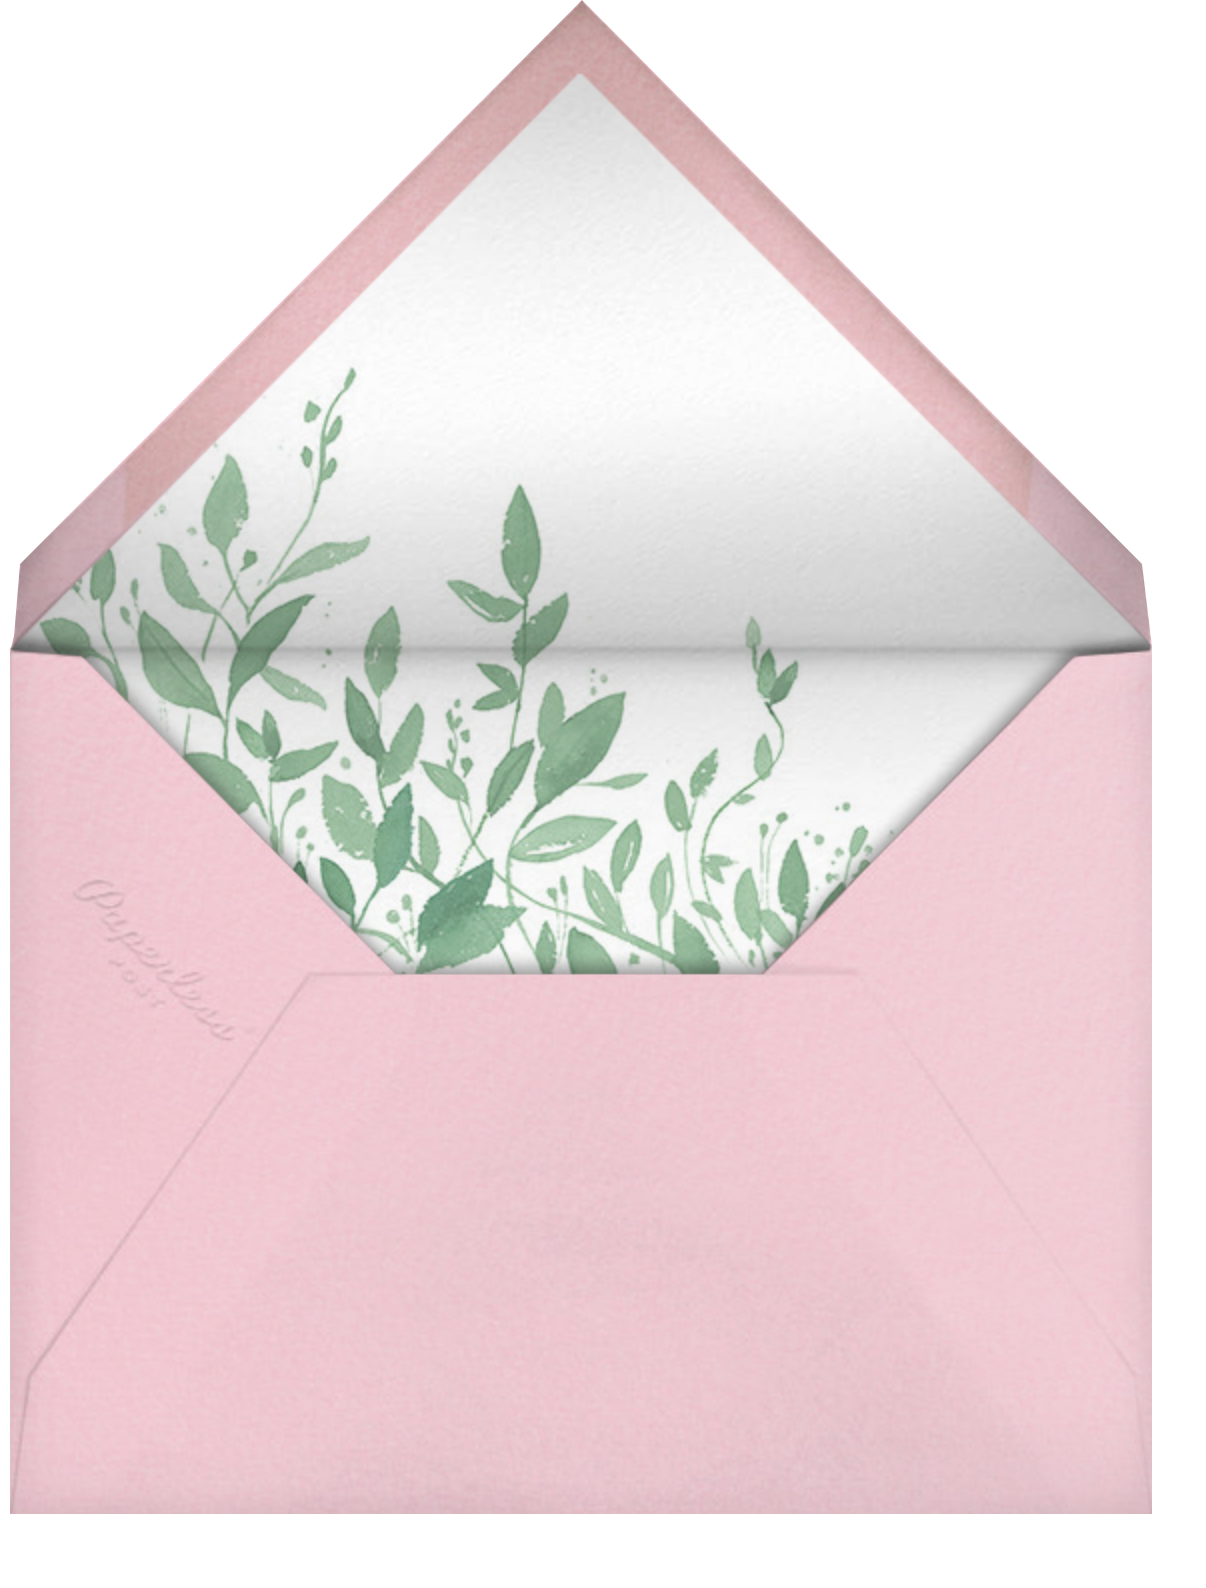 Queen Anne's Lace (Cream) - Paperless Post - Envelope